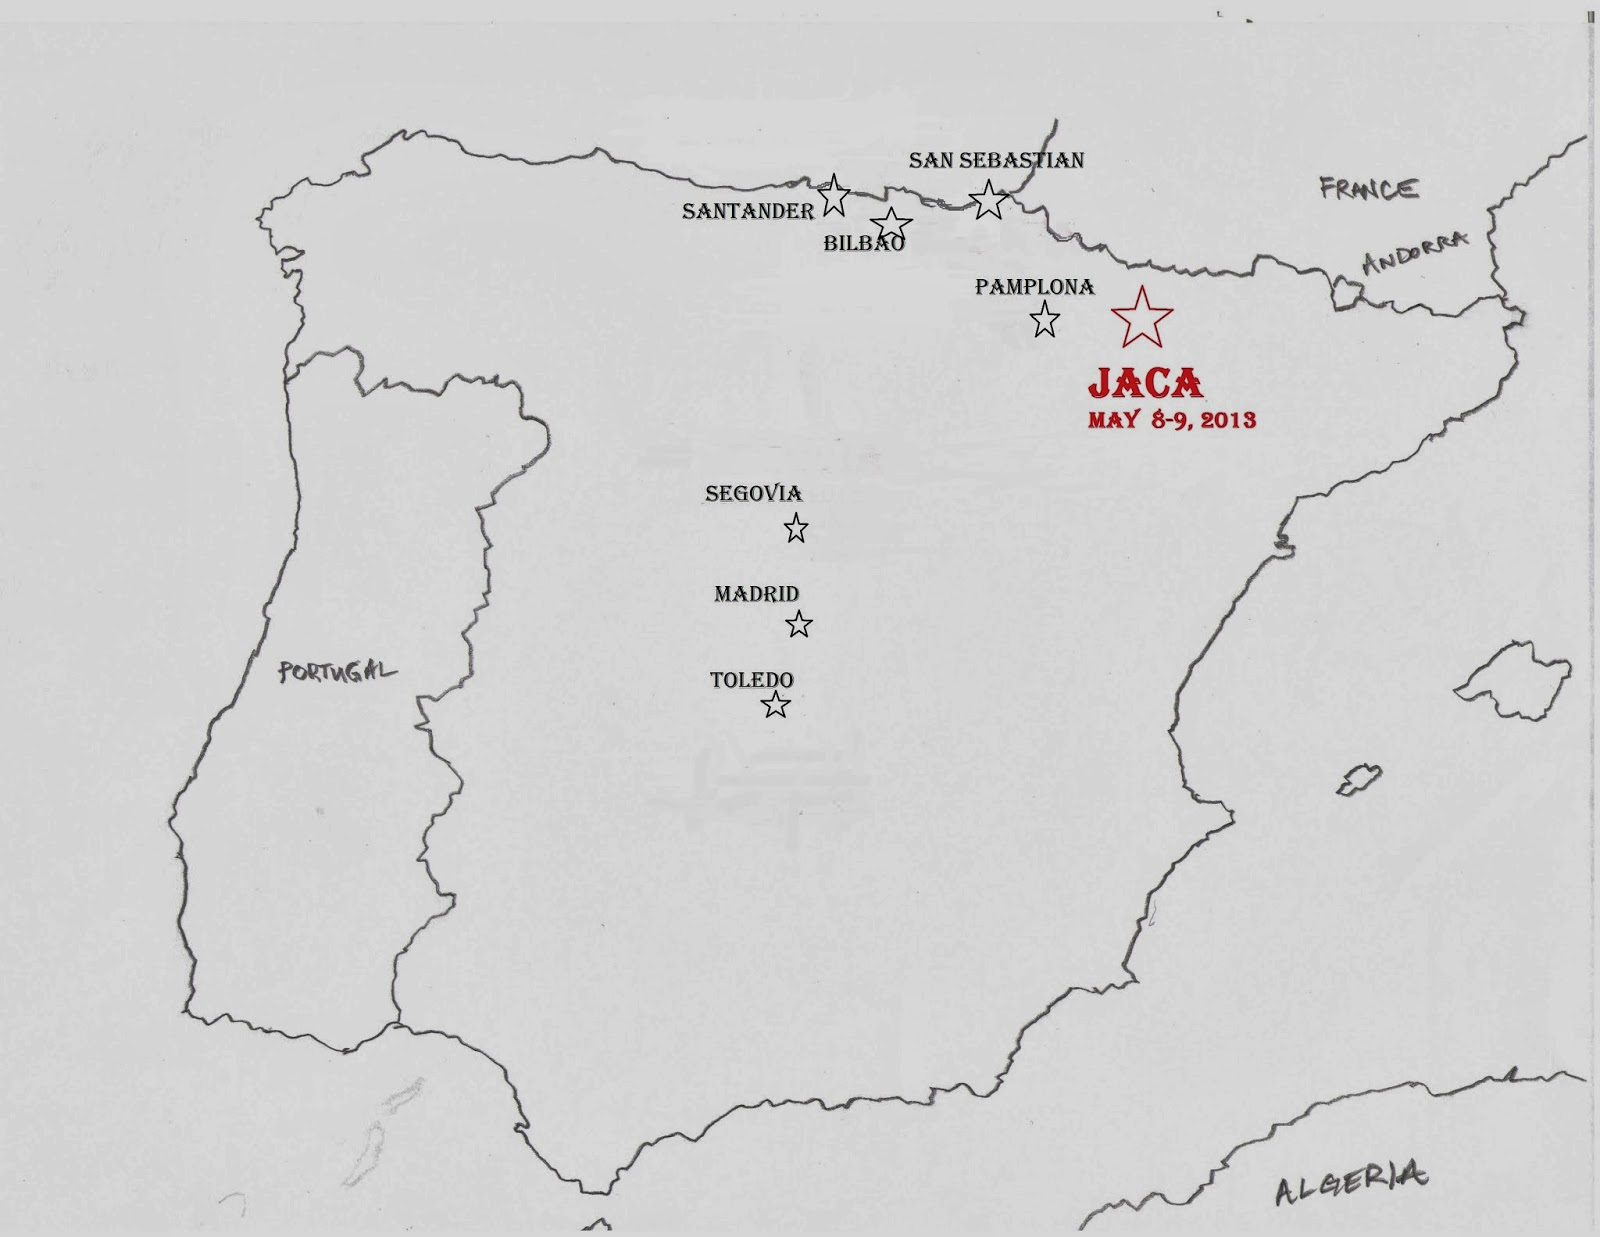 Jaca Spain  city pictures gallery : Wasatch Solo: Jaca, Spain gateway to the Pyrenees , May 8 and 9, 2013